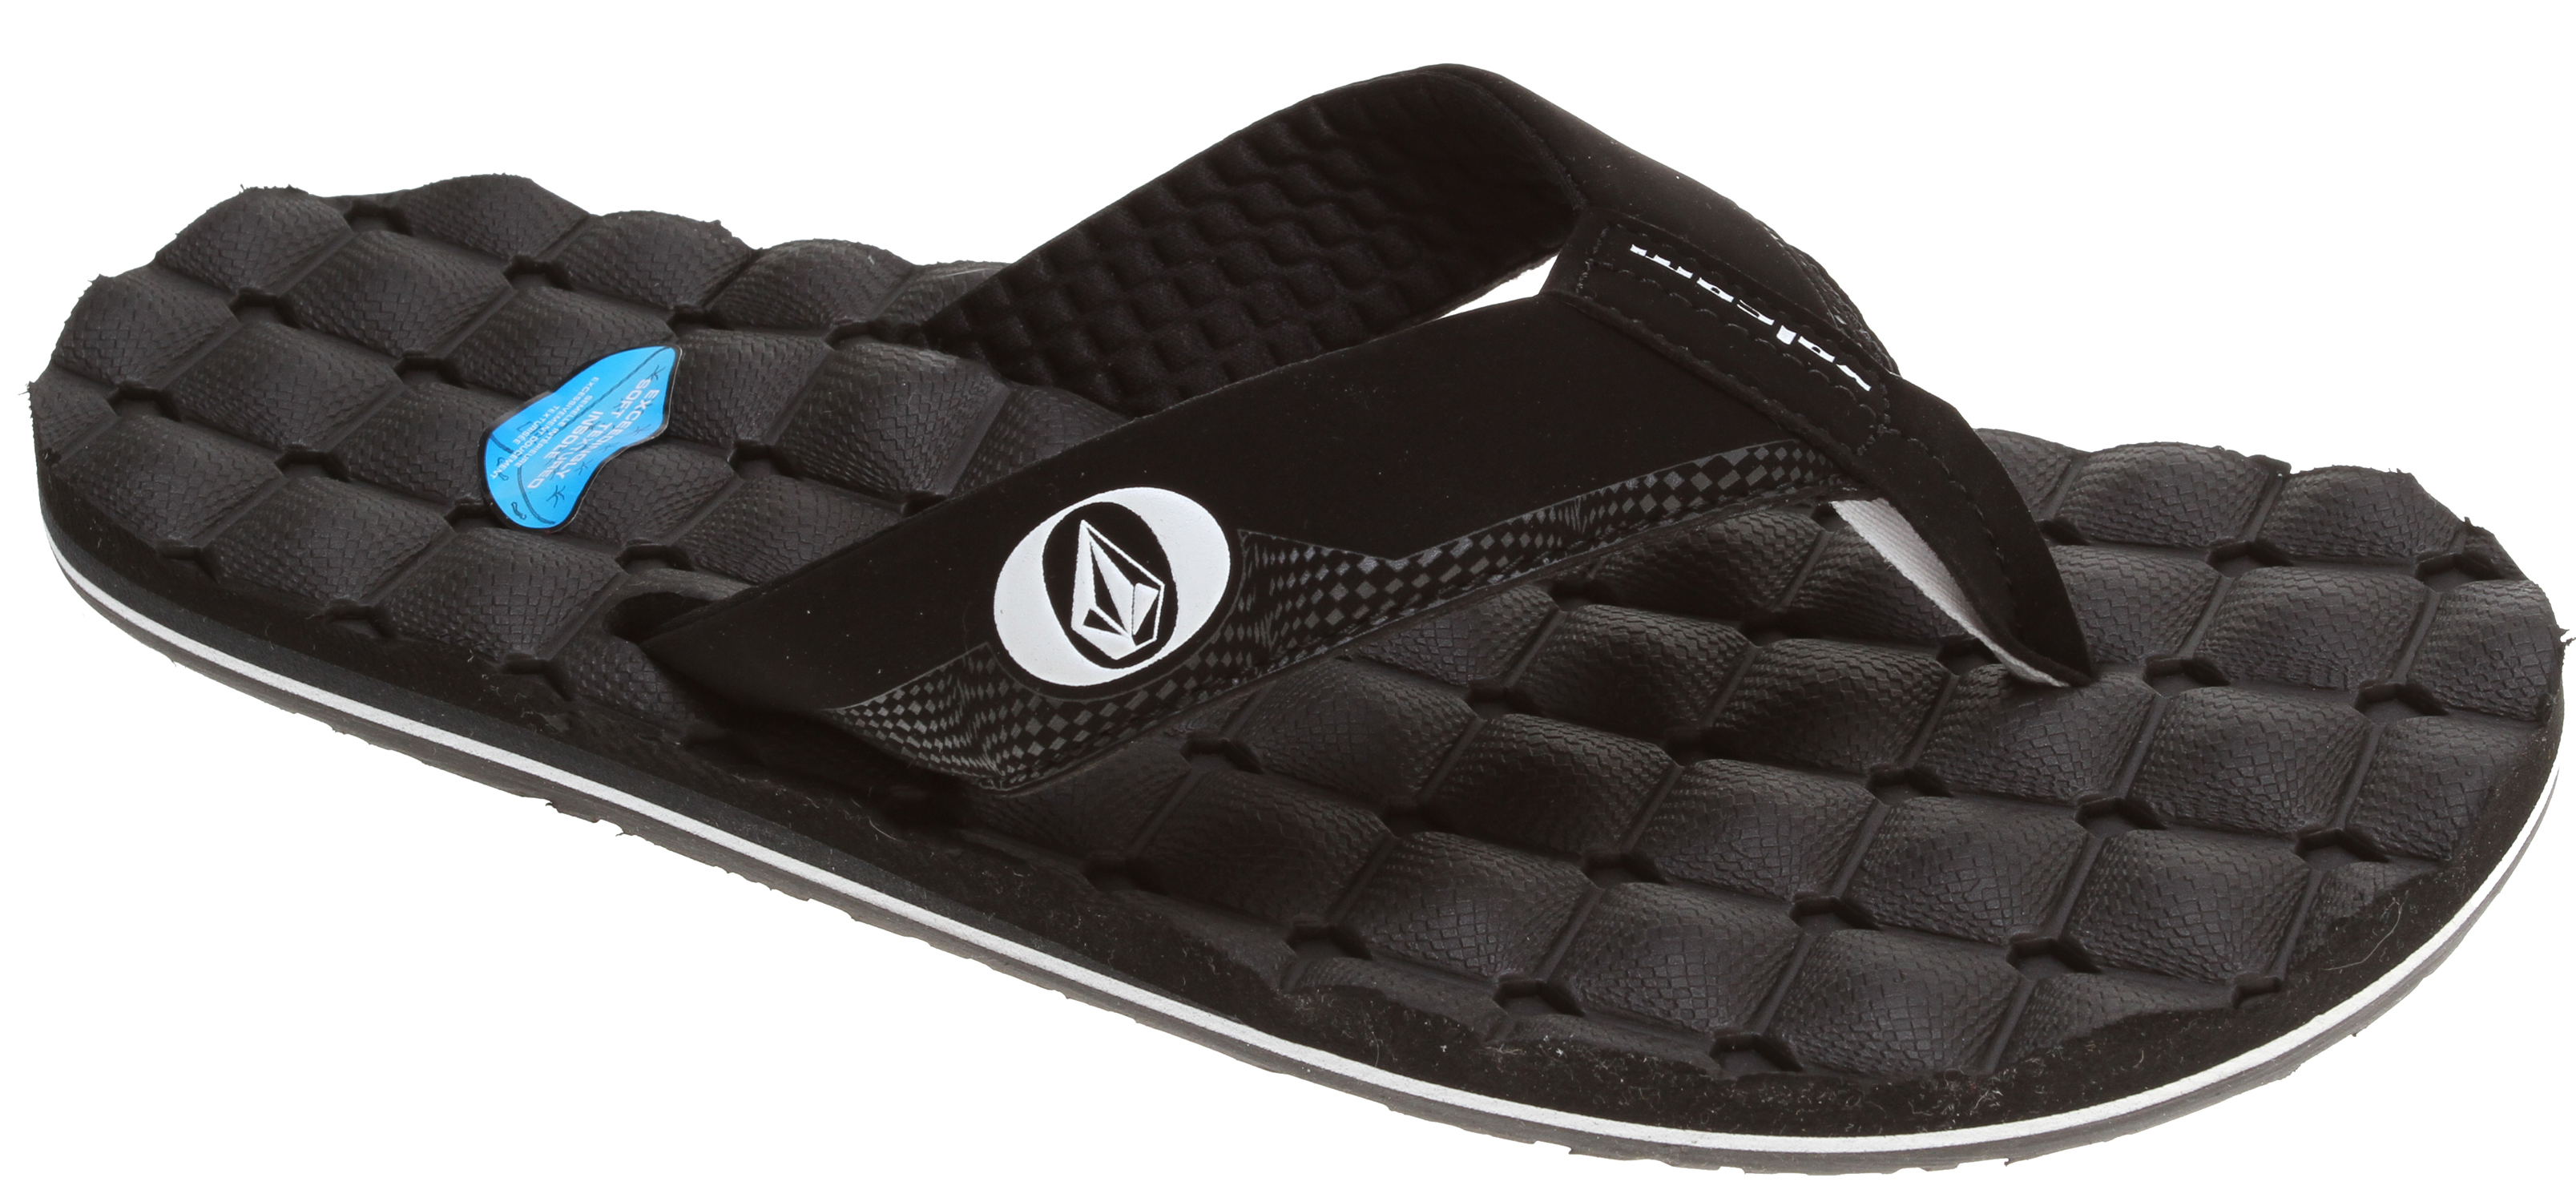 Surf Ahhhh. It's like Volcom transformed your favorite gaming chair into a cush and quilted sandal. Just be warned, the Recliner Creedler is so comfortable you may fall asleep on your feet.Key Features of the Volcom Recliner Creedlers Sandals: Designed with a super soft molded footbed Triple density EVA insole with arch support. Made from synthetic nubuck. - $21.95